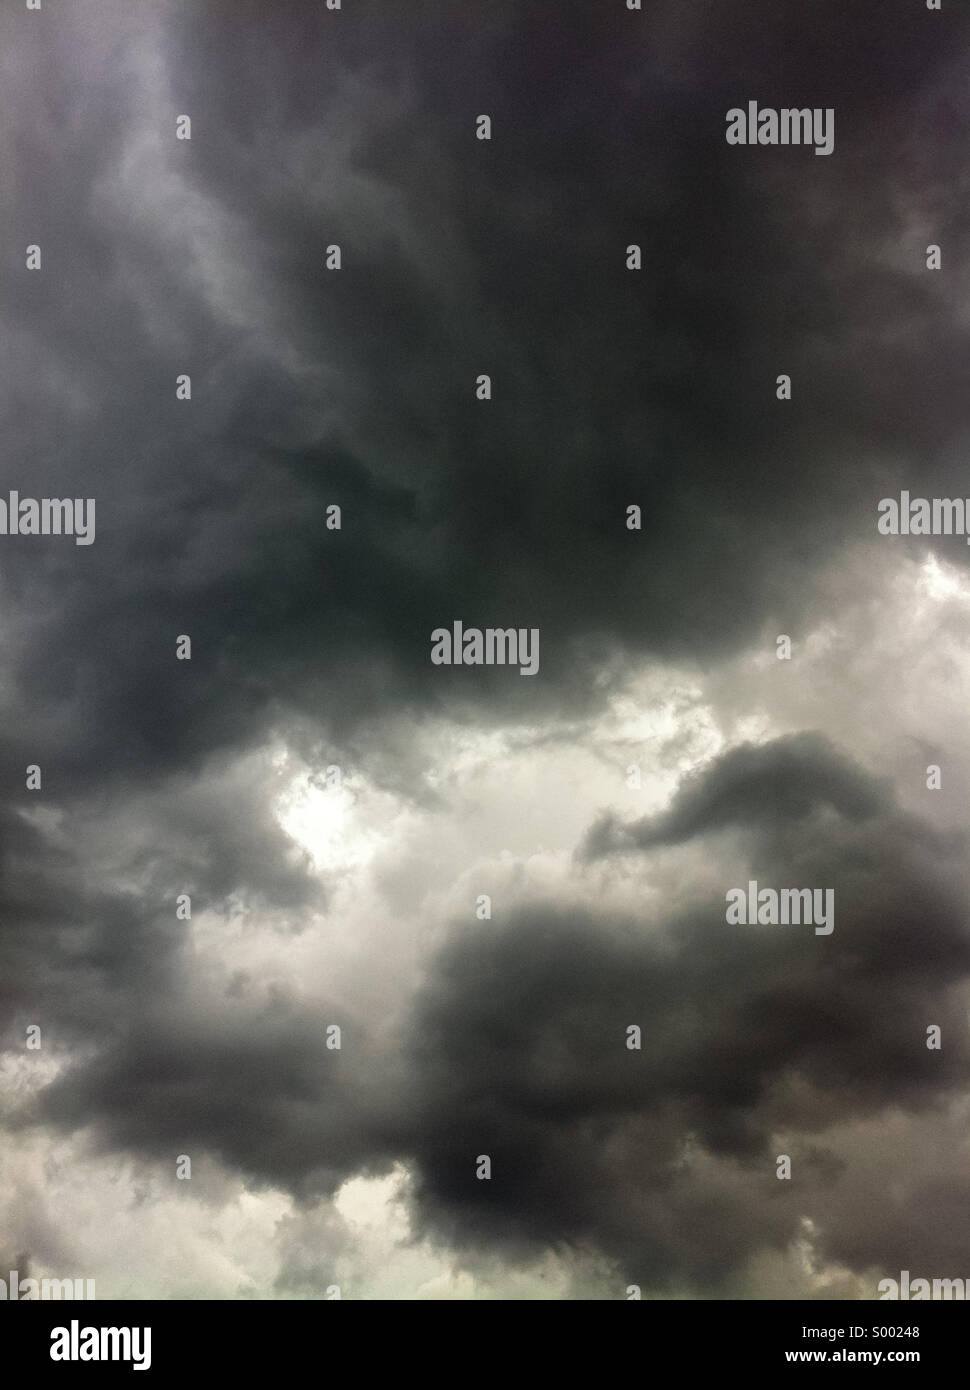 Sunlight peeks through dark, foreboding clouds in a violent, stormy sky. - Stock Image